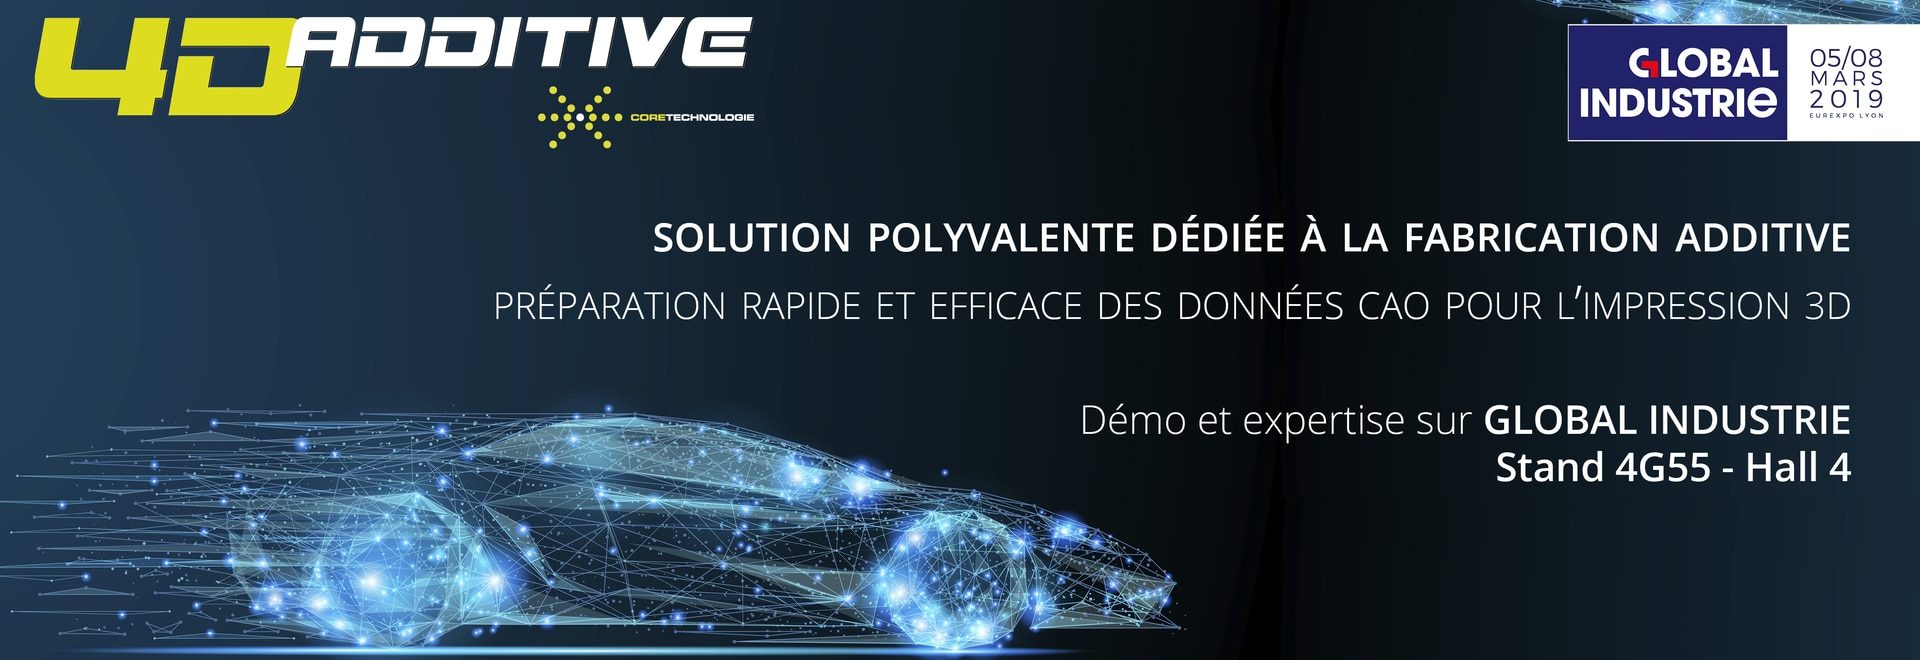 Software innovation for 3D printing: 4D_Additive presented at the Global Industrie Exhibition